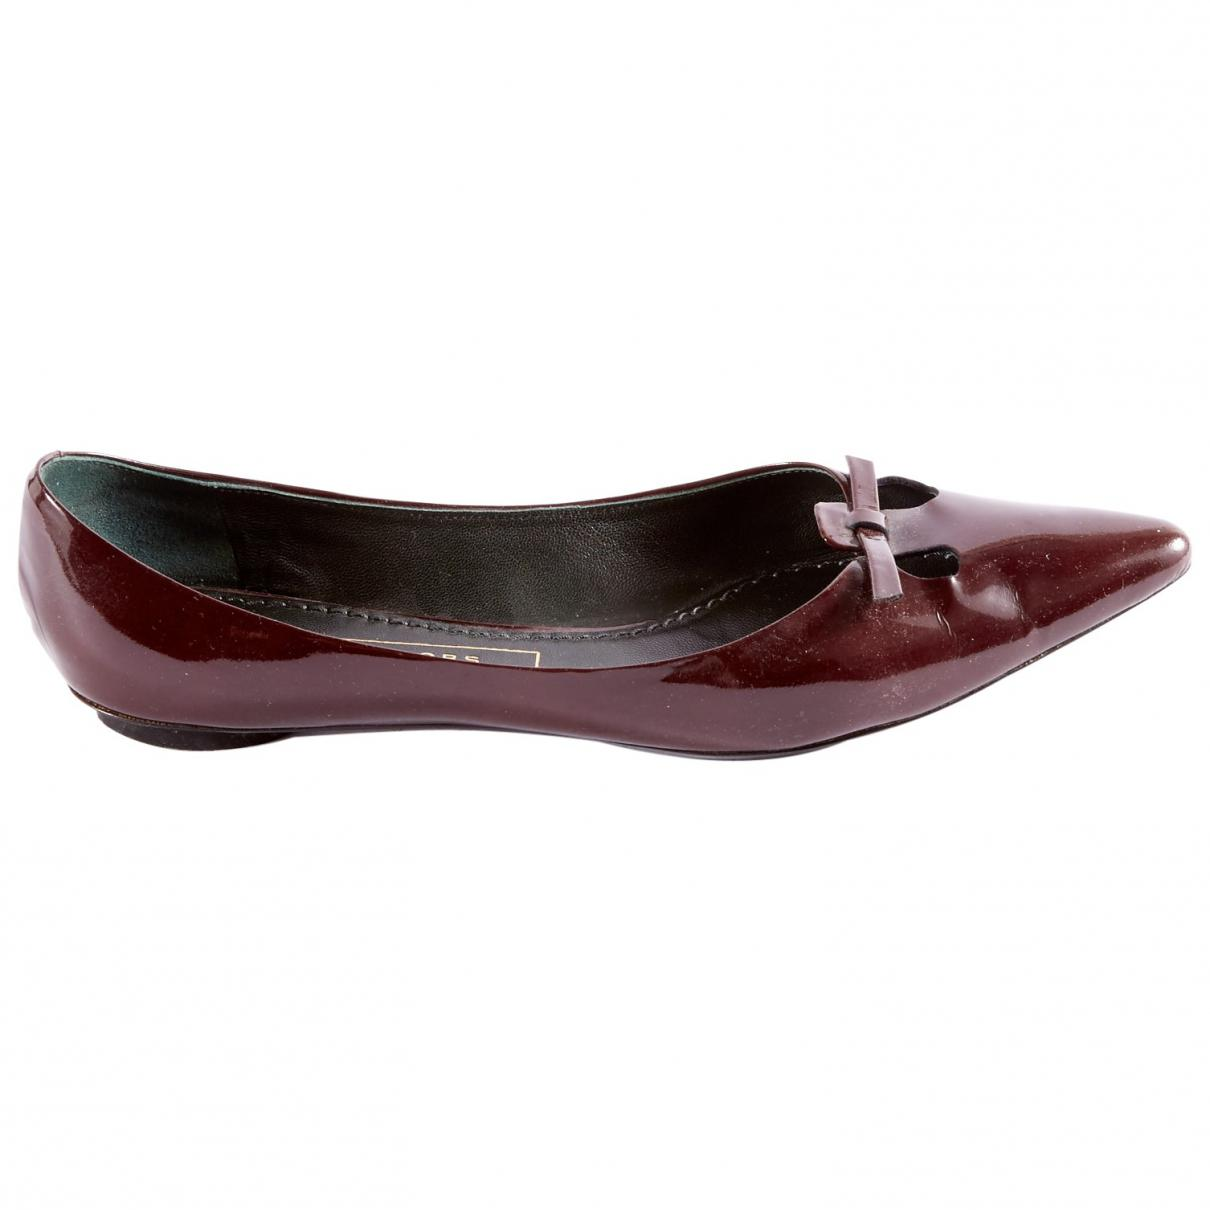 Pre-owned - Patent leather ballet flats Marc Jacobs 4MFBr0zQ